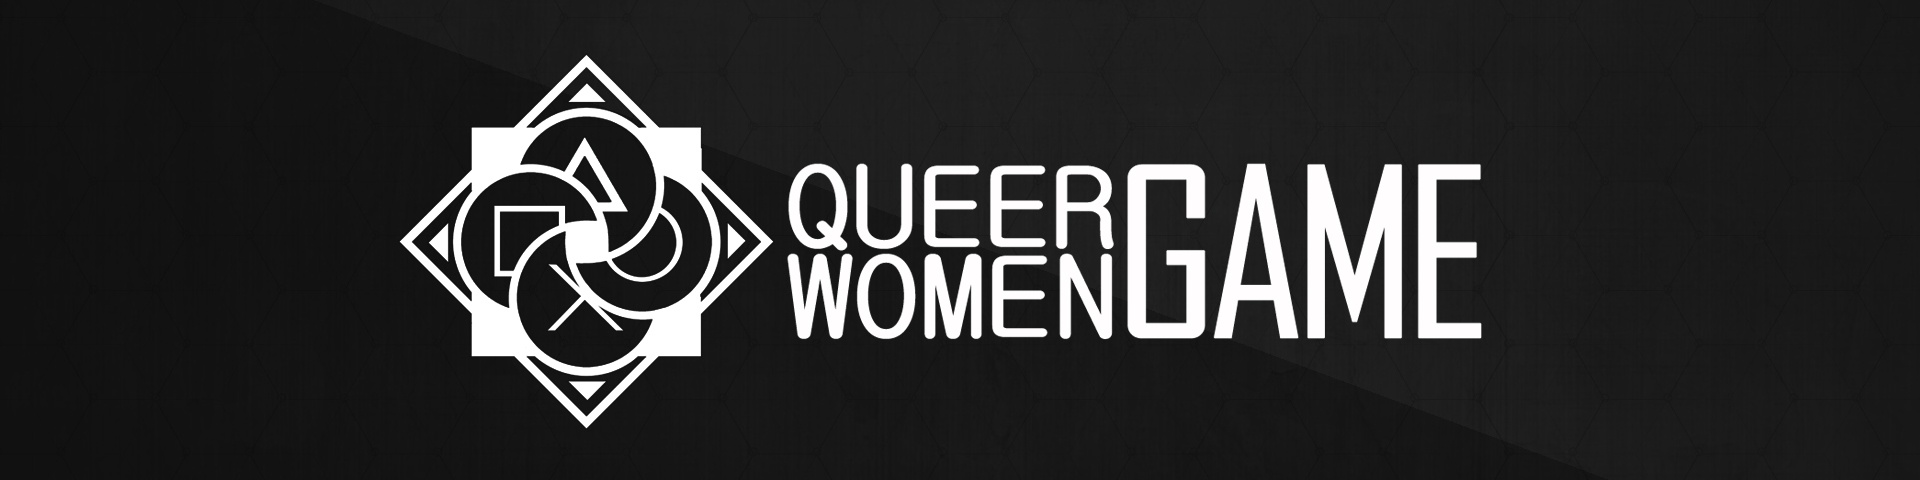 queerwomengame Cover